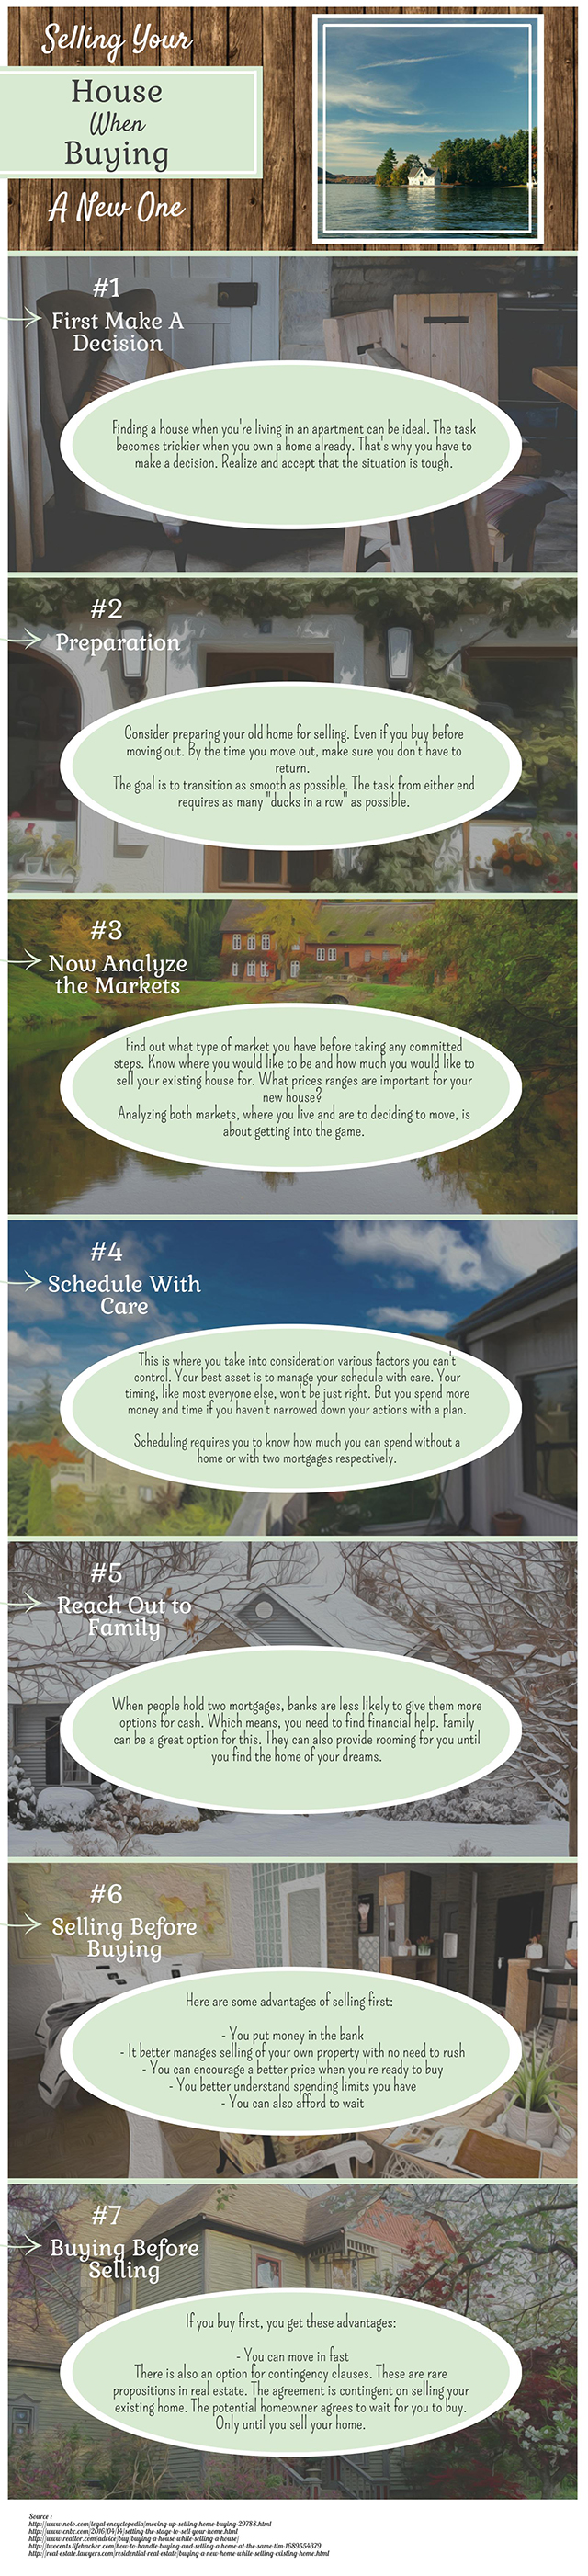 Selling Your House When Buying A New One - Infographic